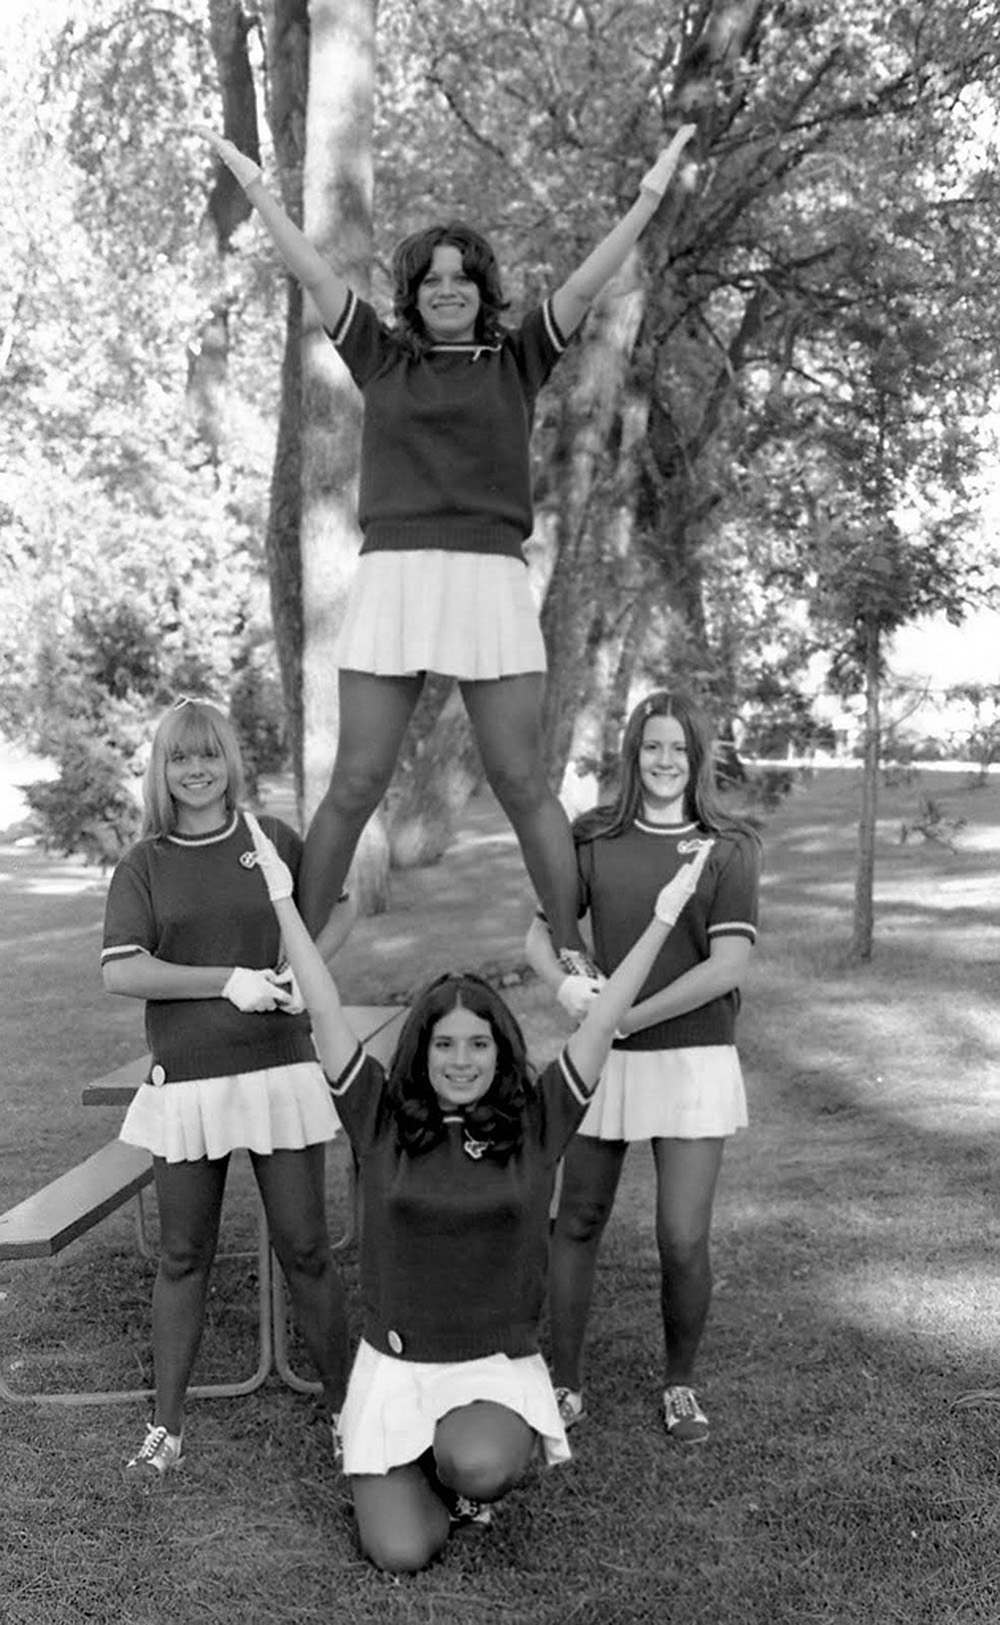 cheerleaders 1970s